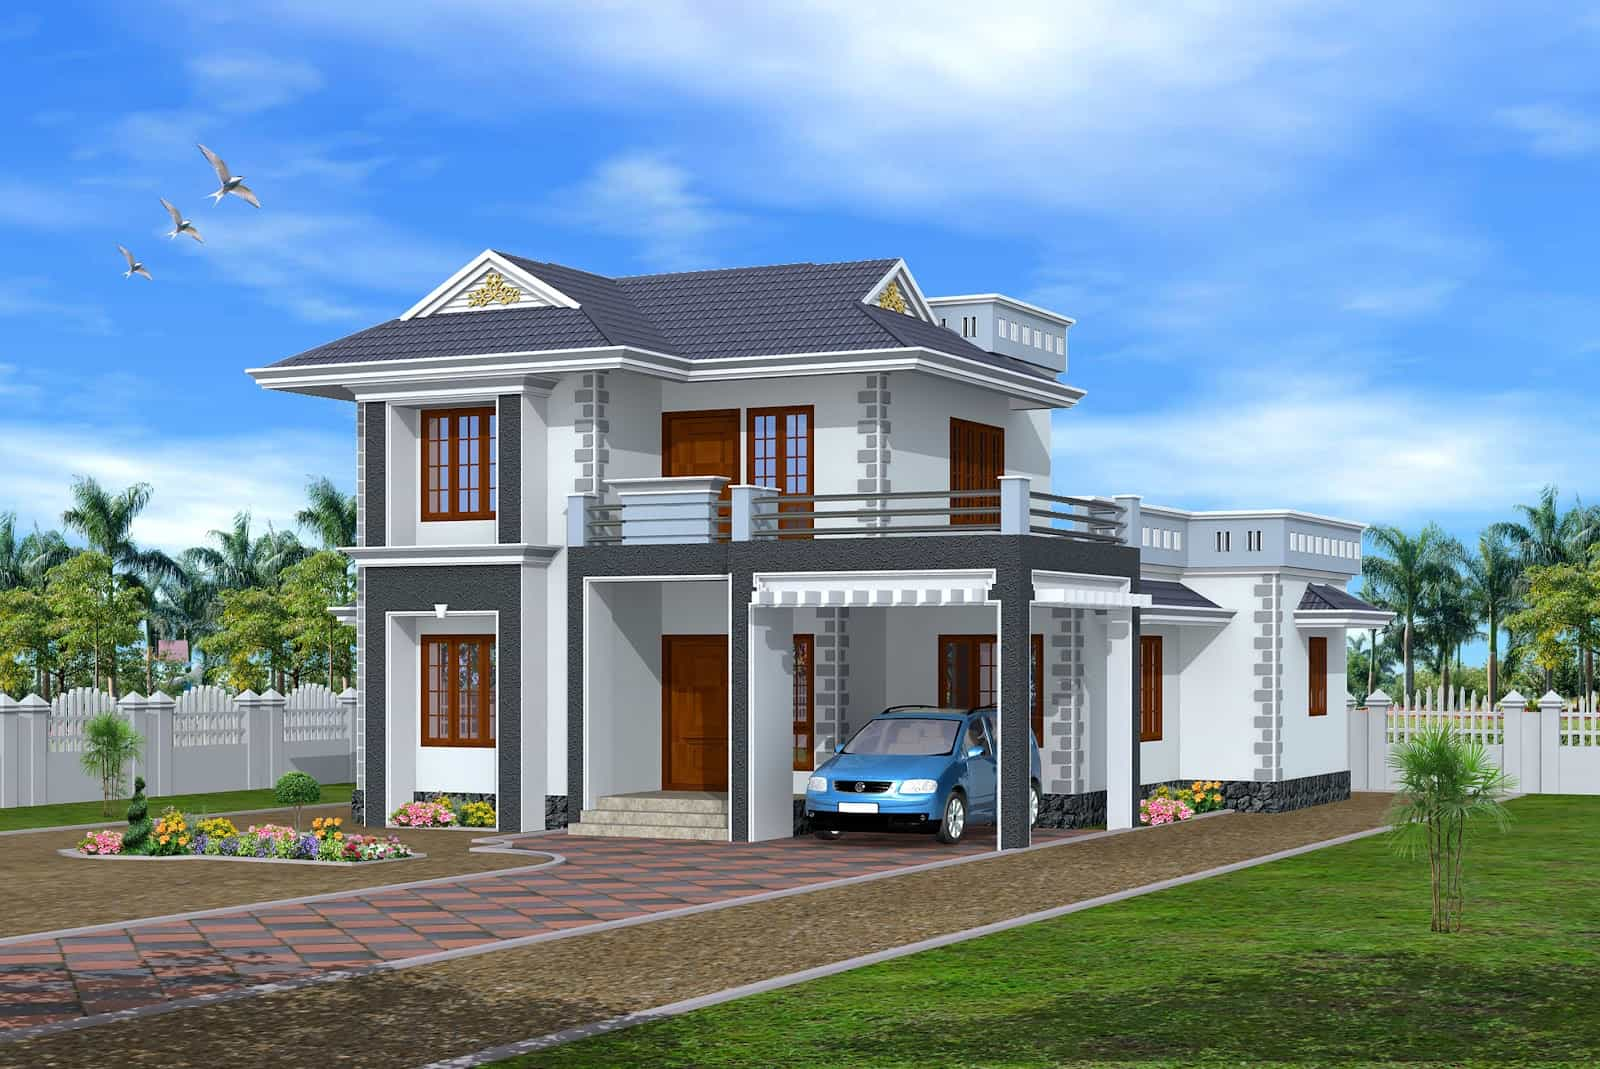 House design at 1845 sq.ft